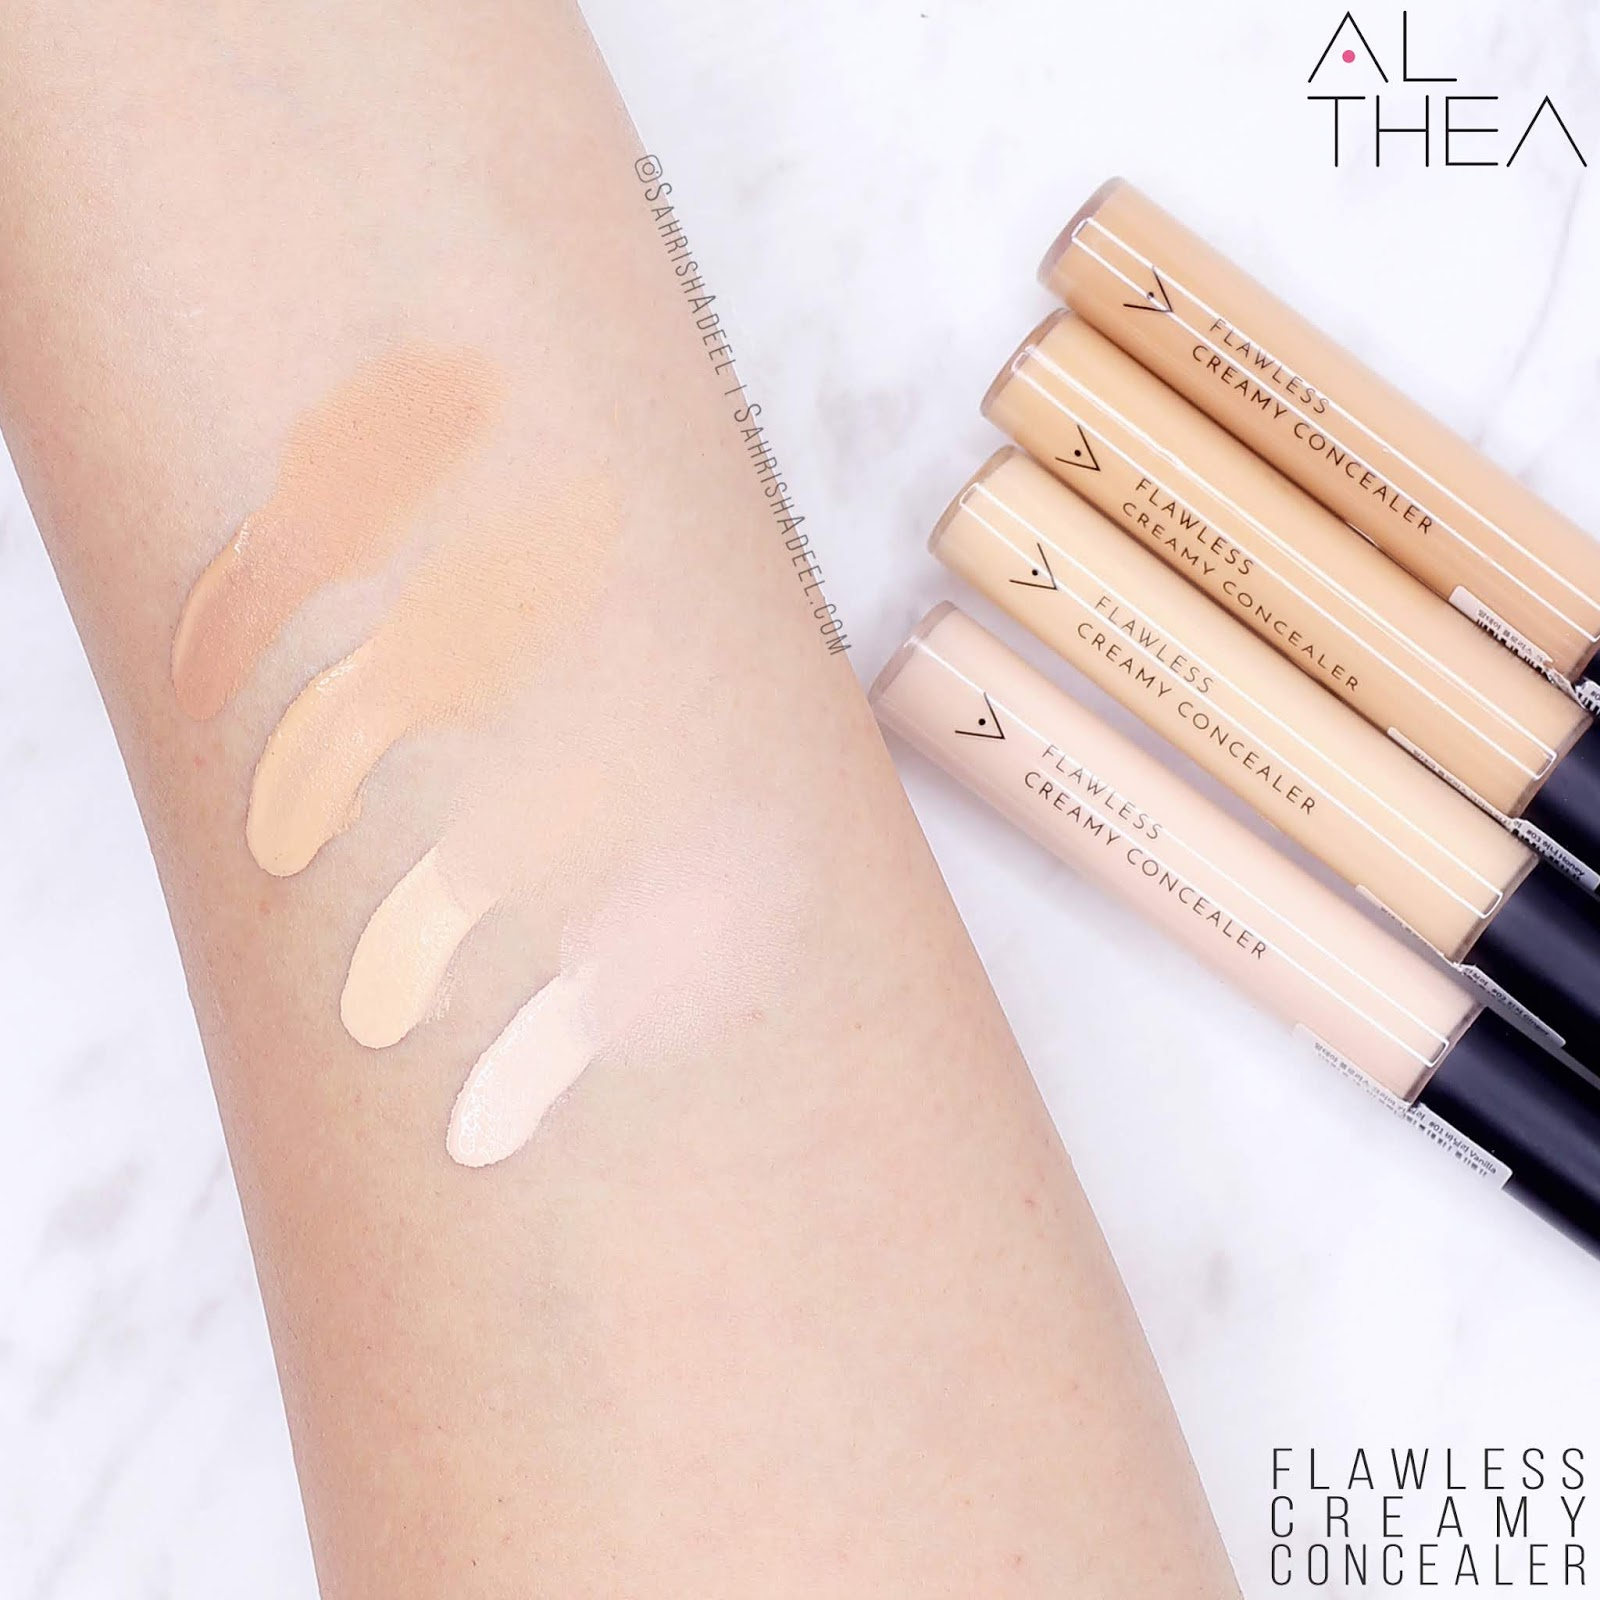 Flawless Creamy Concealer by Althea Korea - Review & Swatches [All Shades]